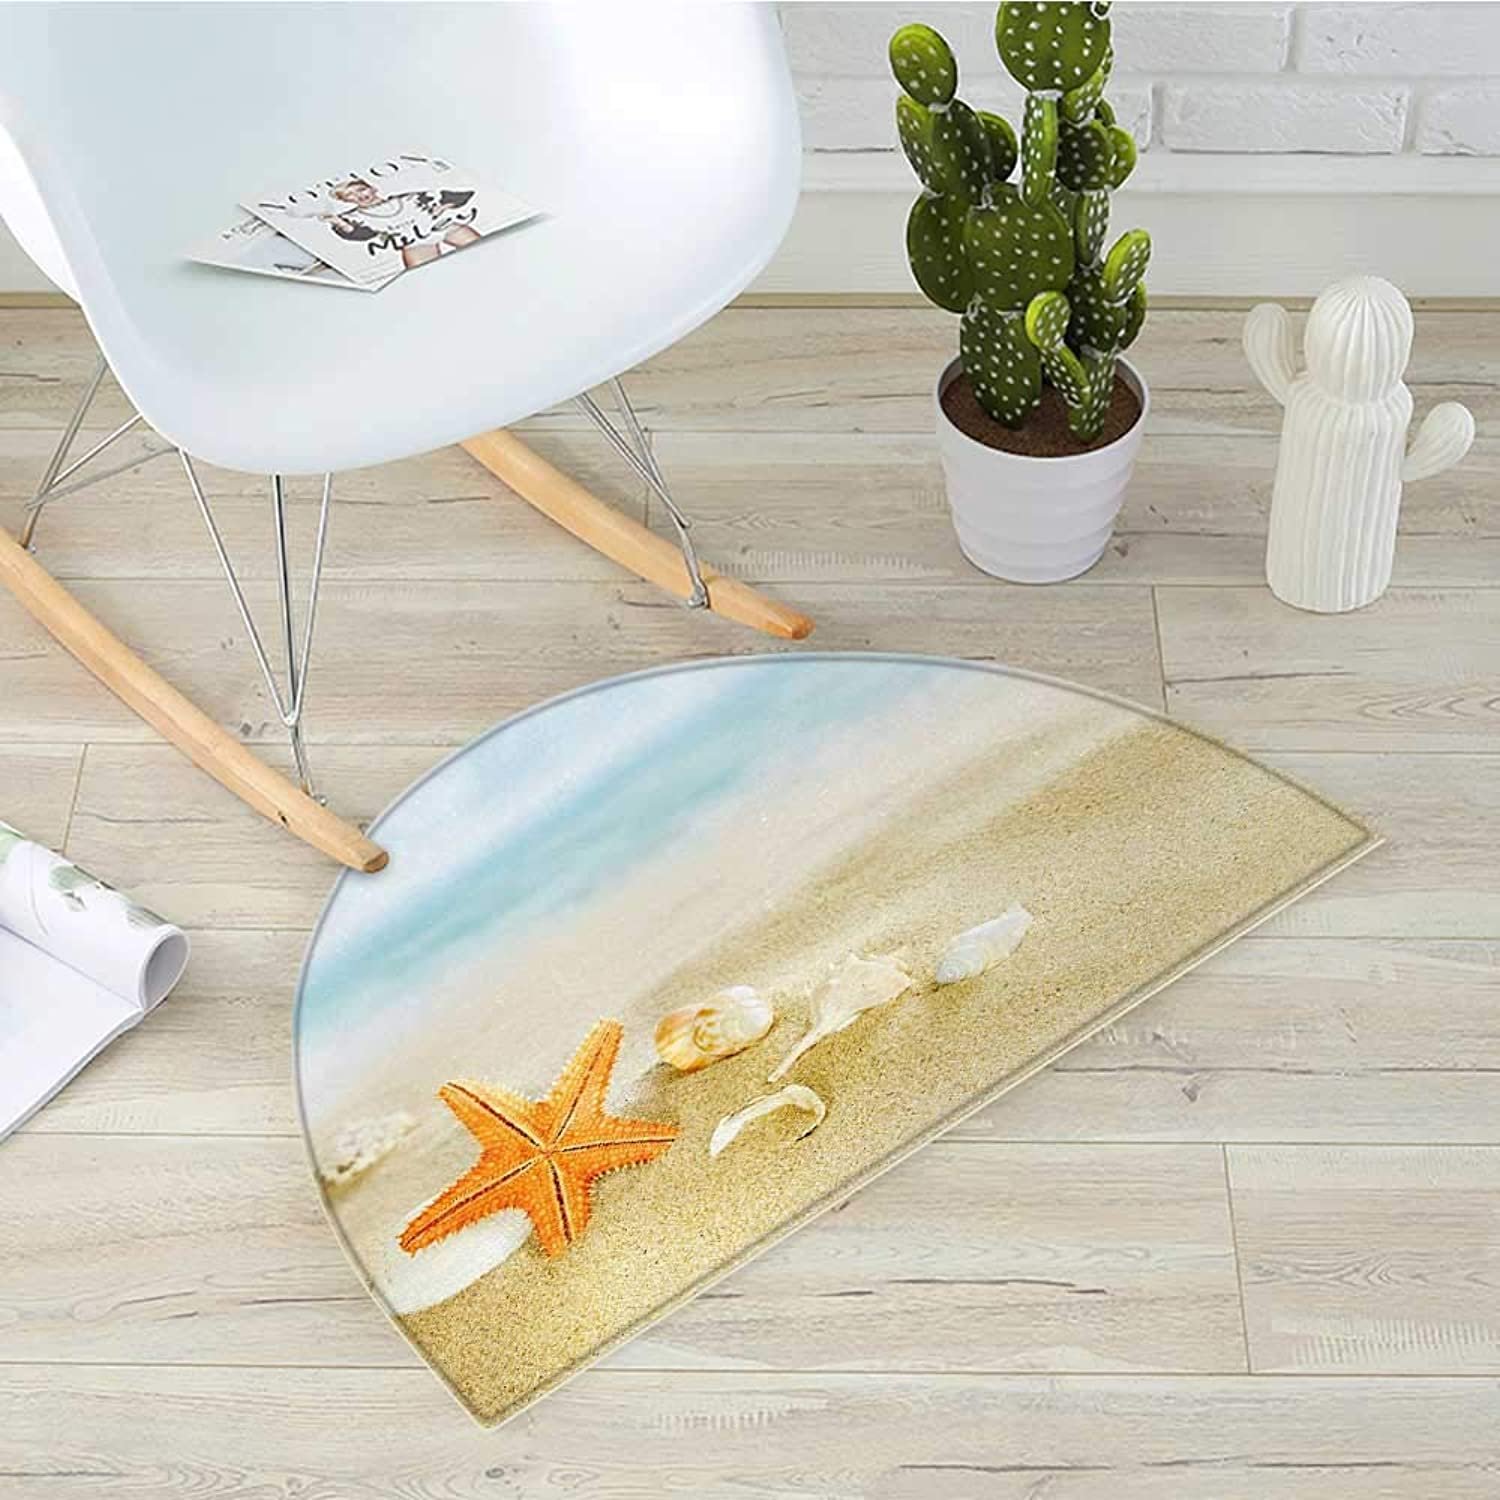 Starfish Half Round Door mats Tropical Caribbean Seacoast with Different Shells and Animals Relaxing Vacation Bathroom Mat H 31.5  xD 47.2  Multicolor